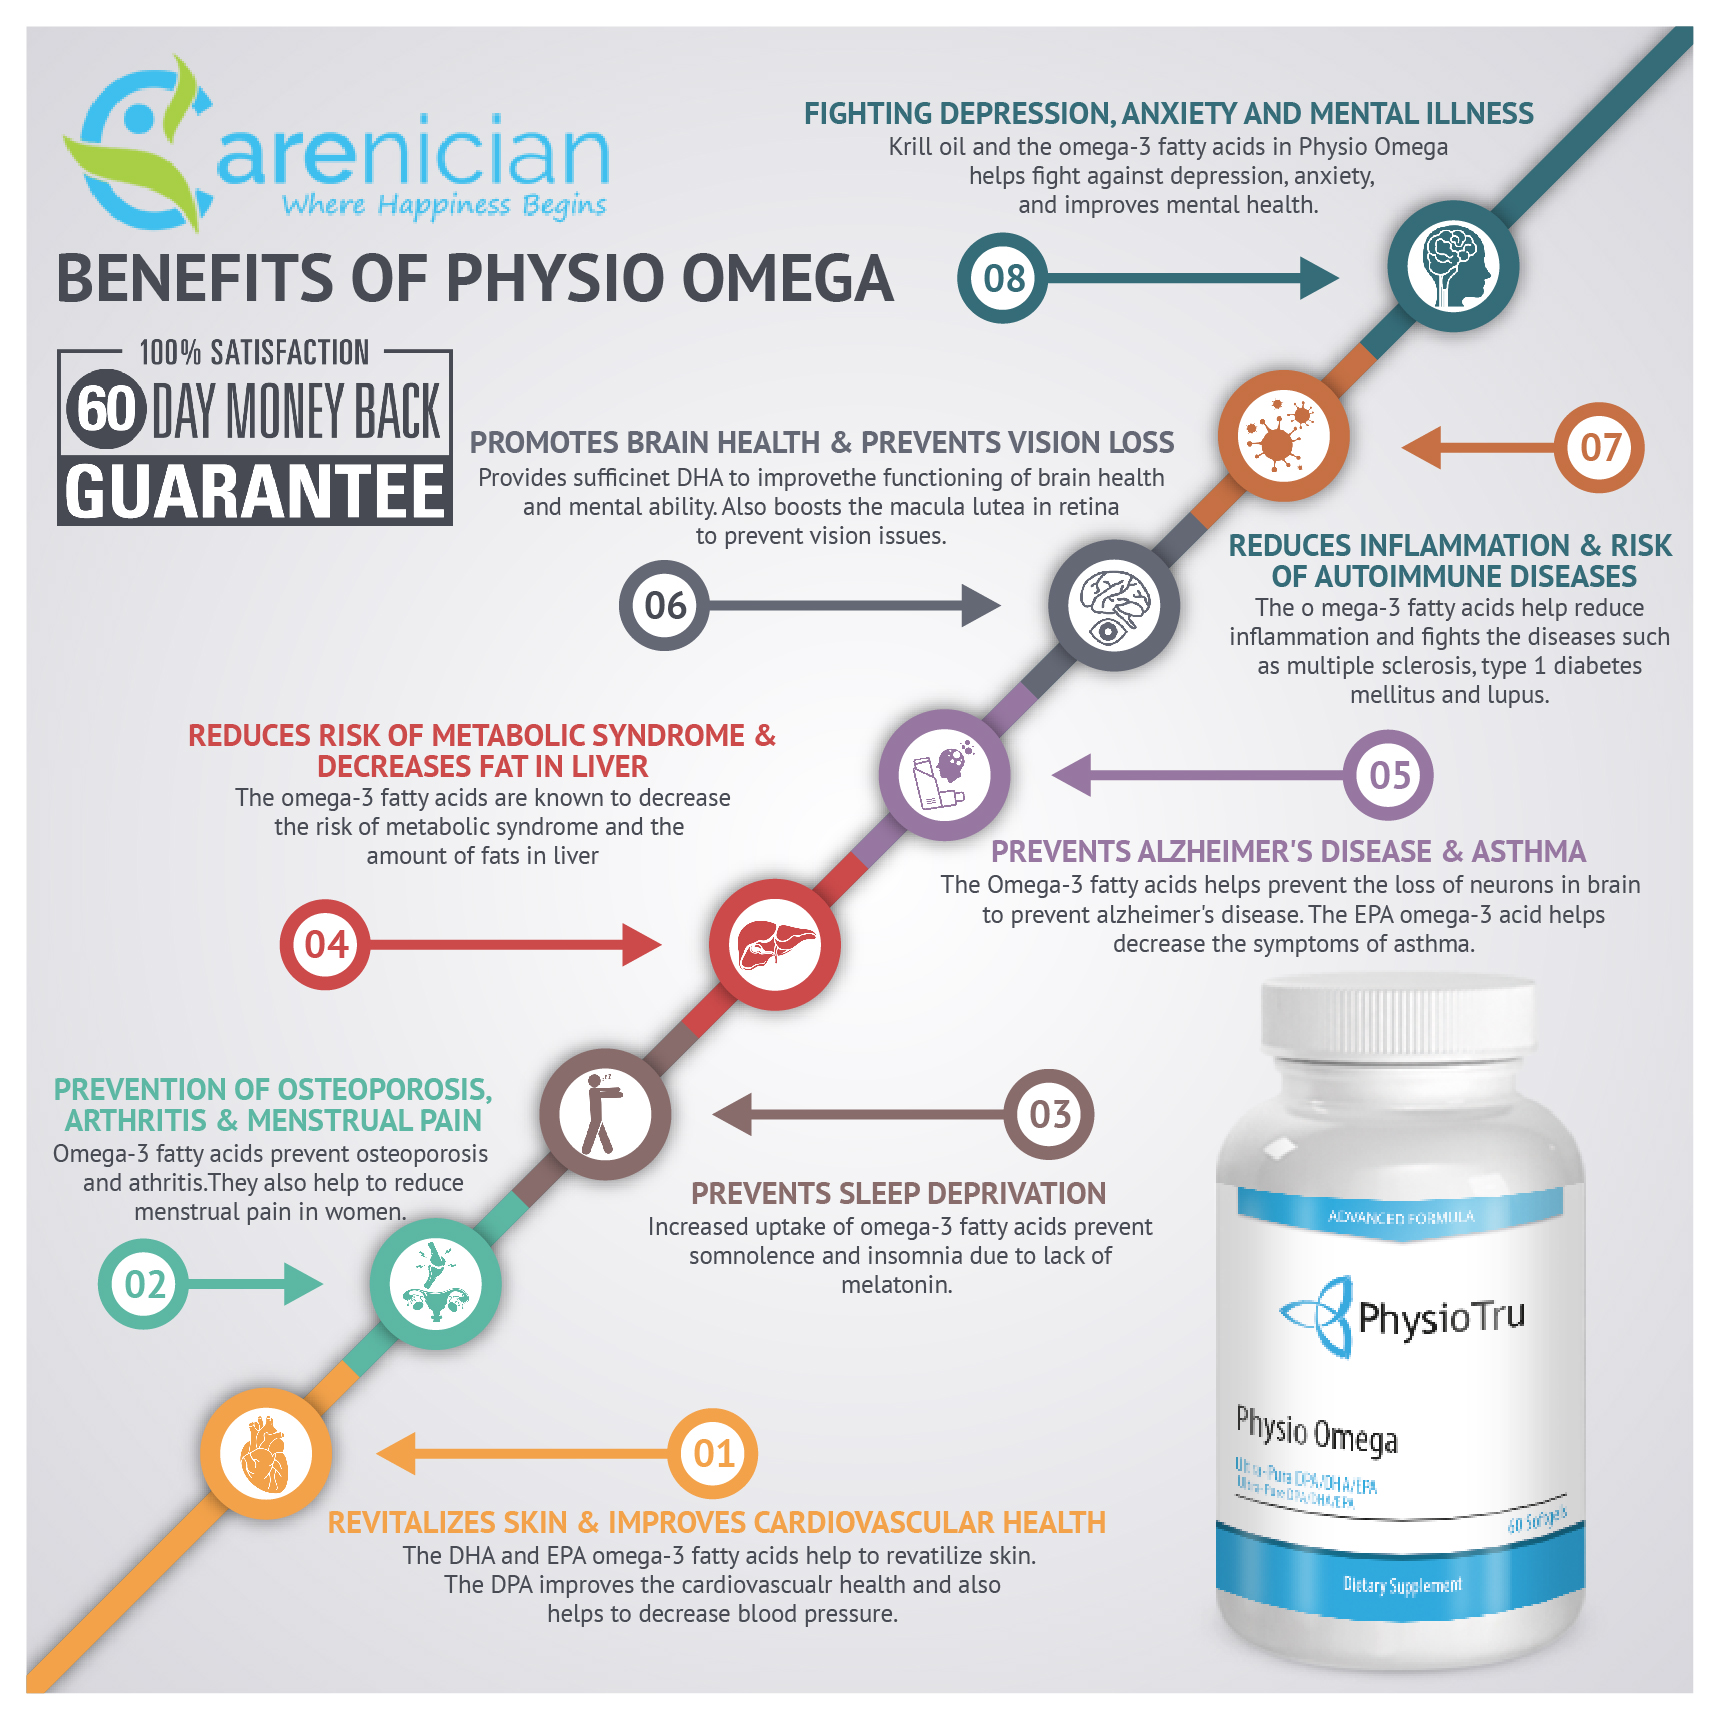 Physio Omega Benefits Infographic by carenician